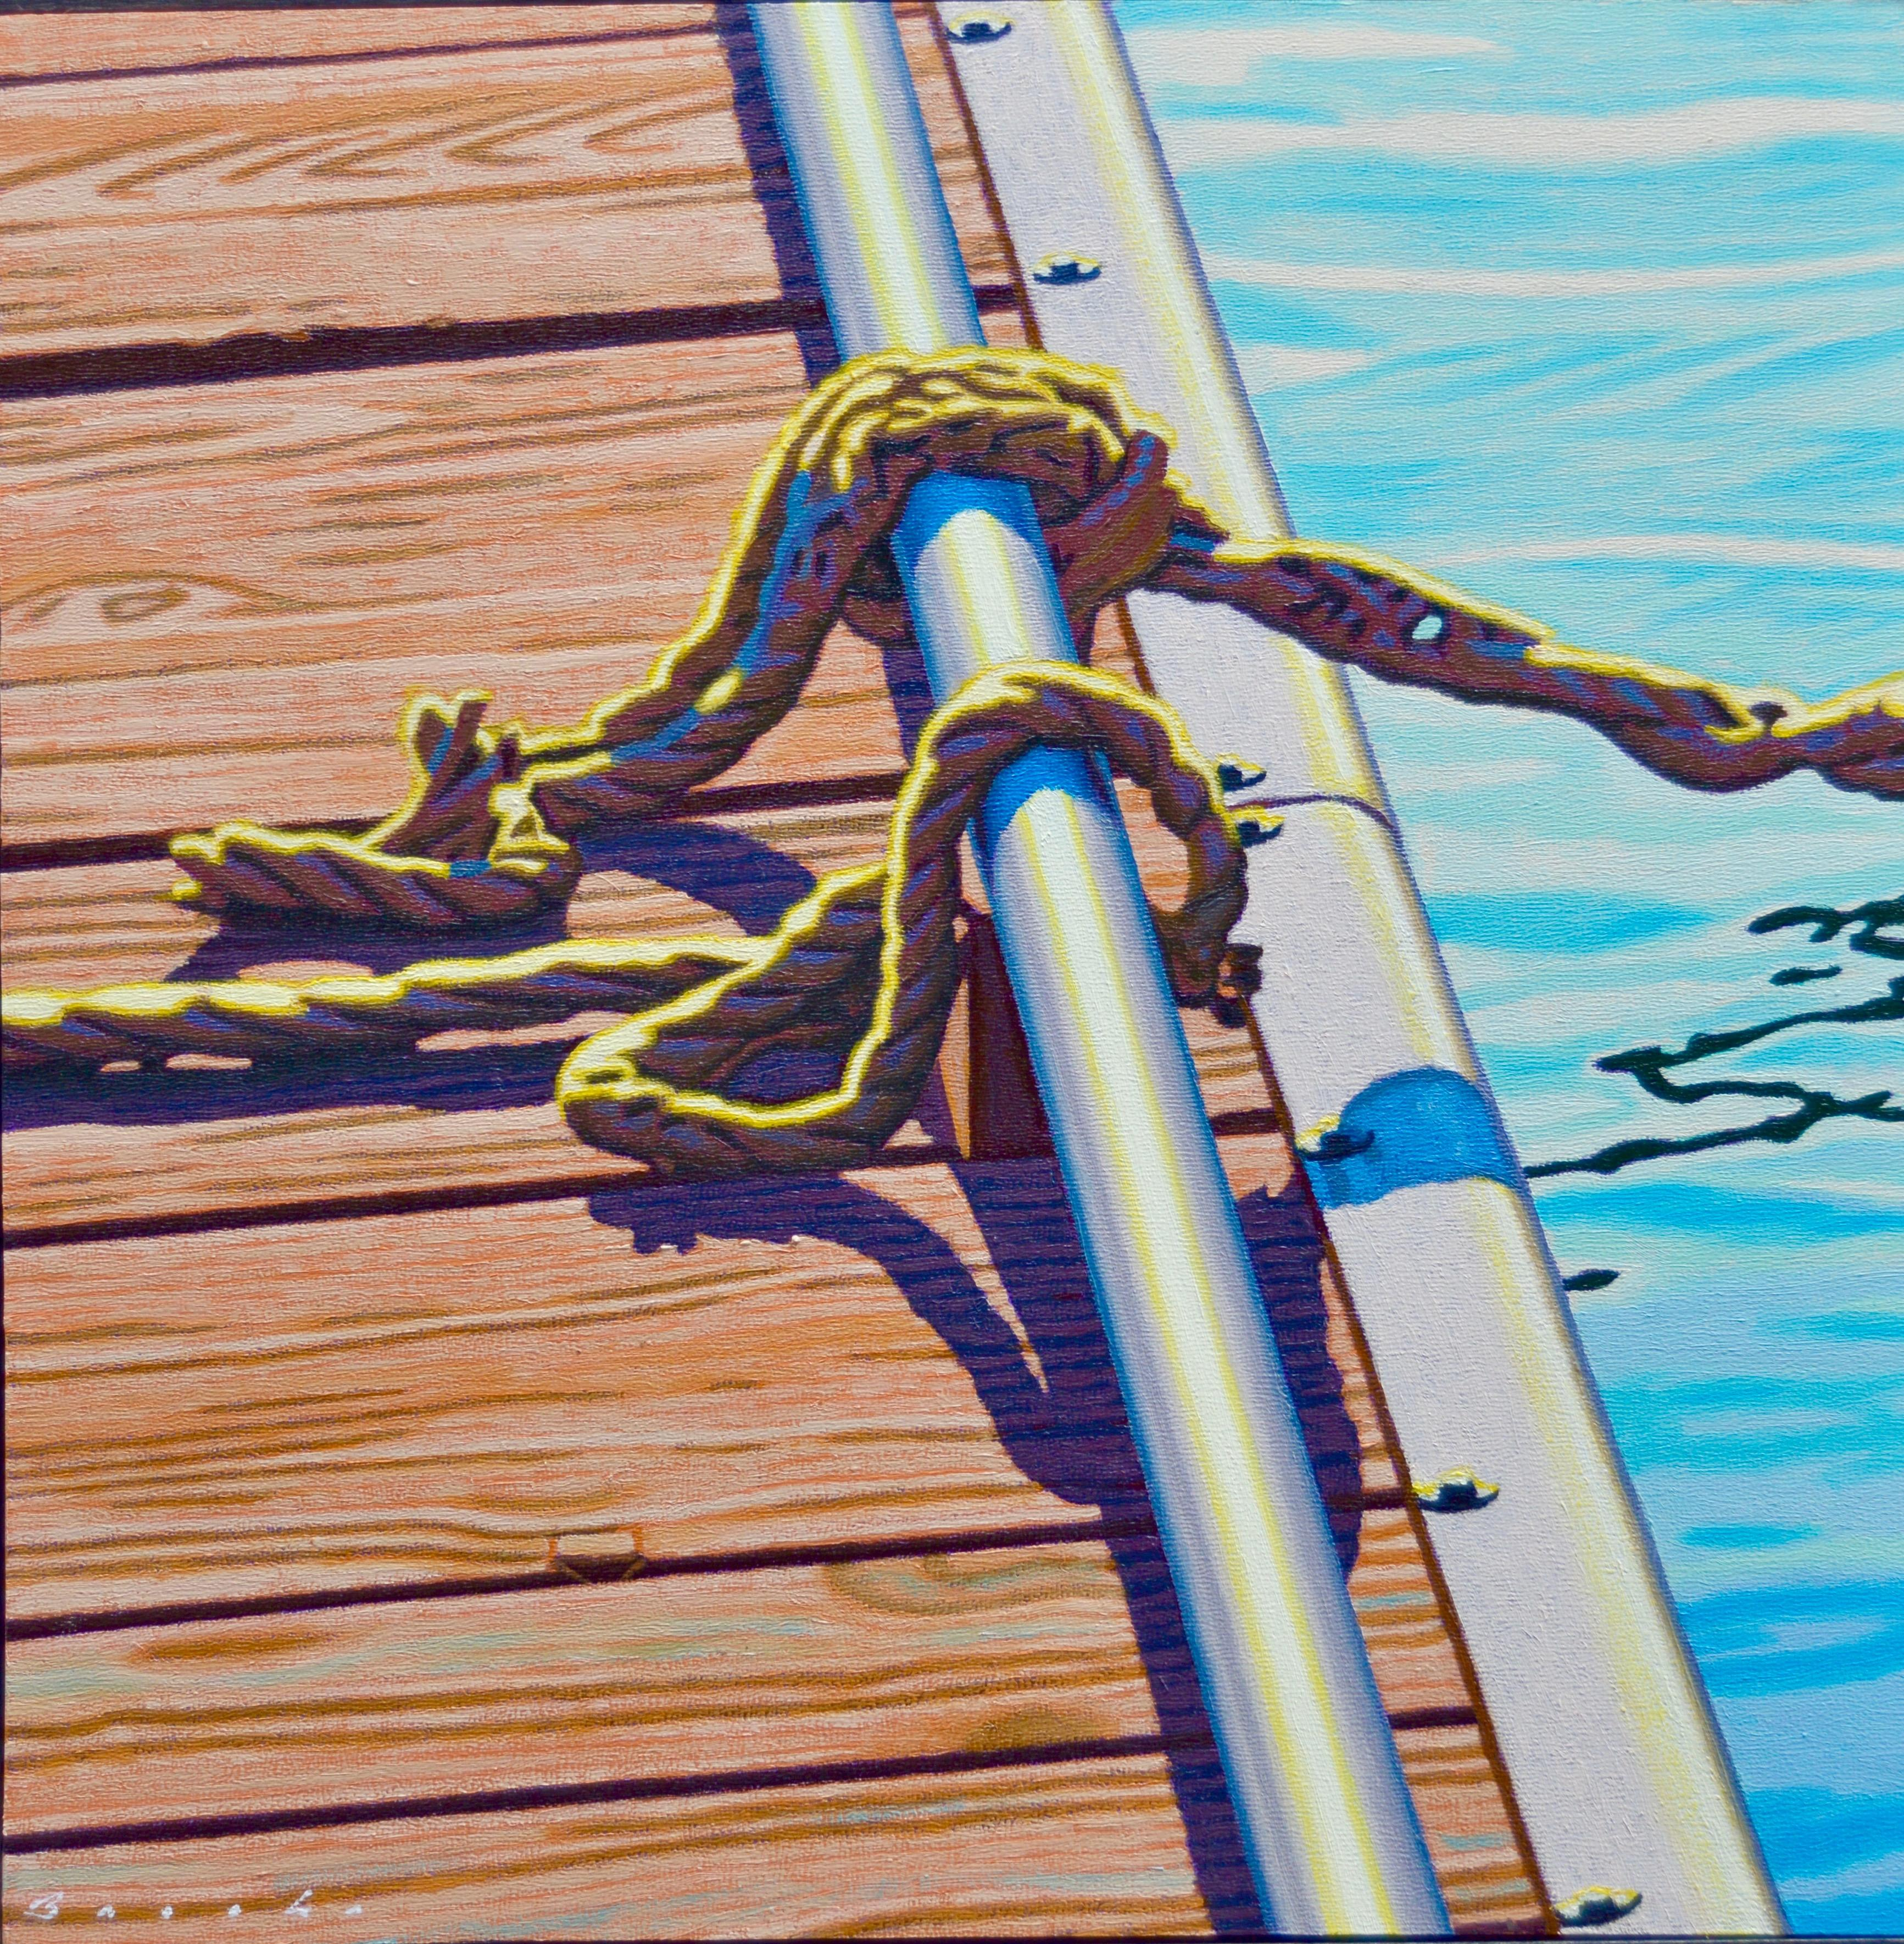 """""""Dock Knots"""" Rope Tied on a Dock in Dramatic Light with Reflection in Water"""